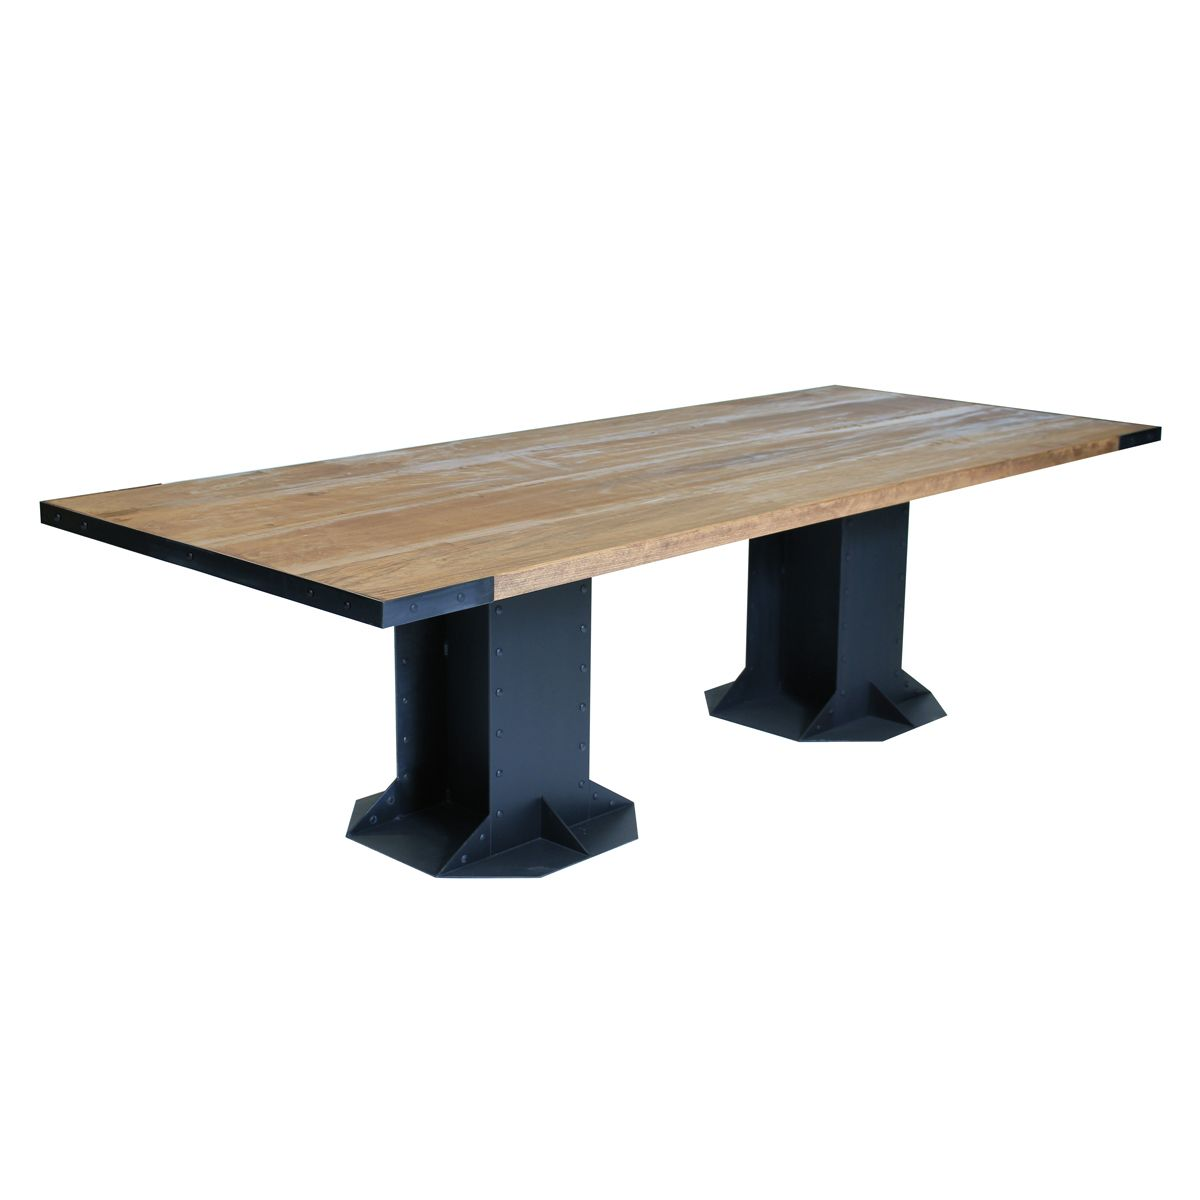 Handmade i beam table for kitchen or dining by iron work for Table 6 4 specification for highway works